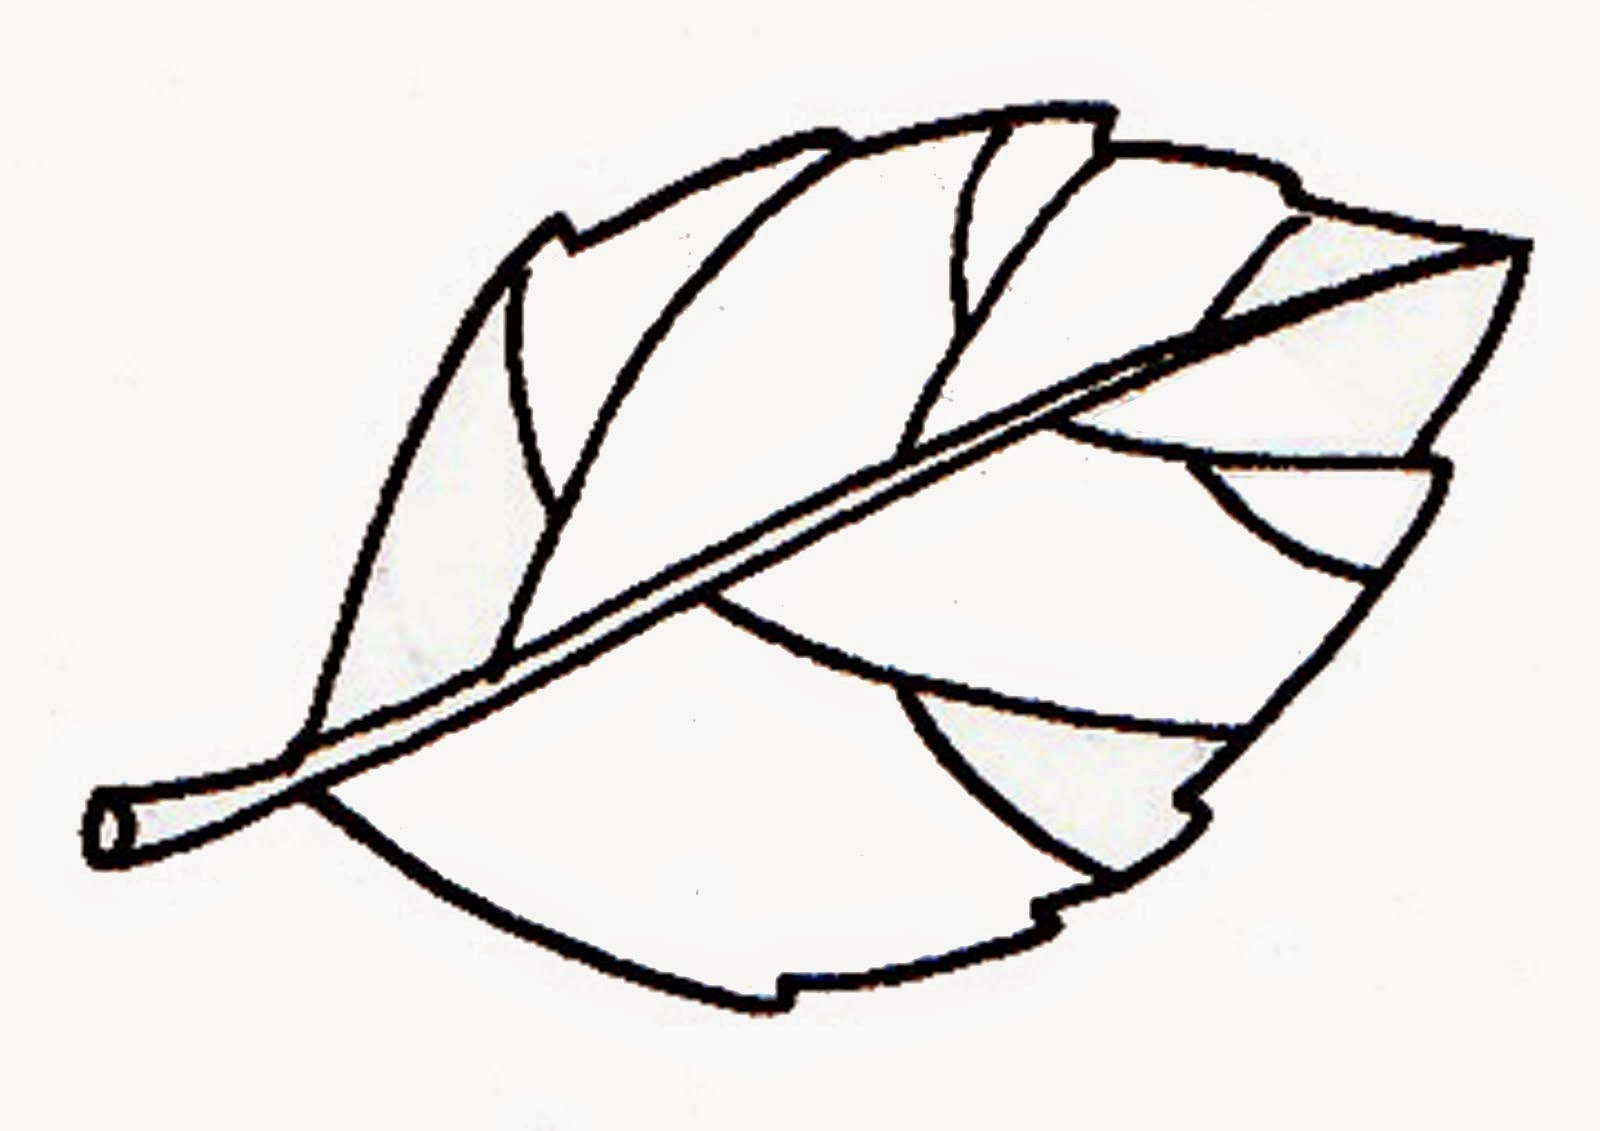 How Plants Send Sugars From Sources To Sinks besides Phone Icon Vector additionally Autonomous Nissan Leafs Start Easy Ride Trials also Leaves Branch 70789 further Tree Branches No Leaves. on picture of leafs